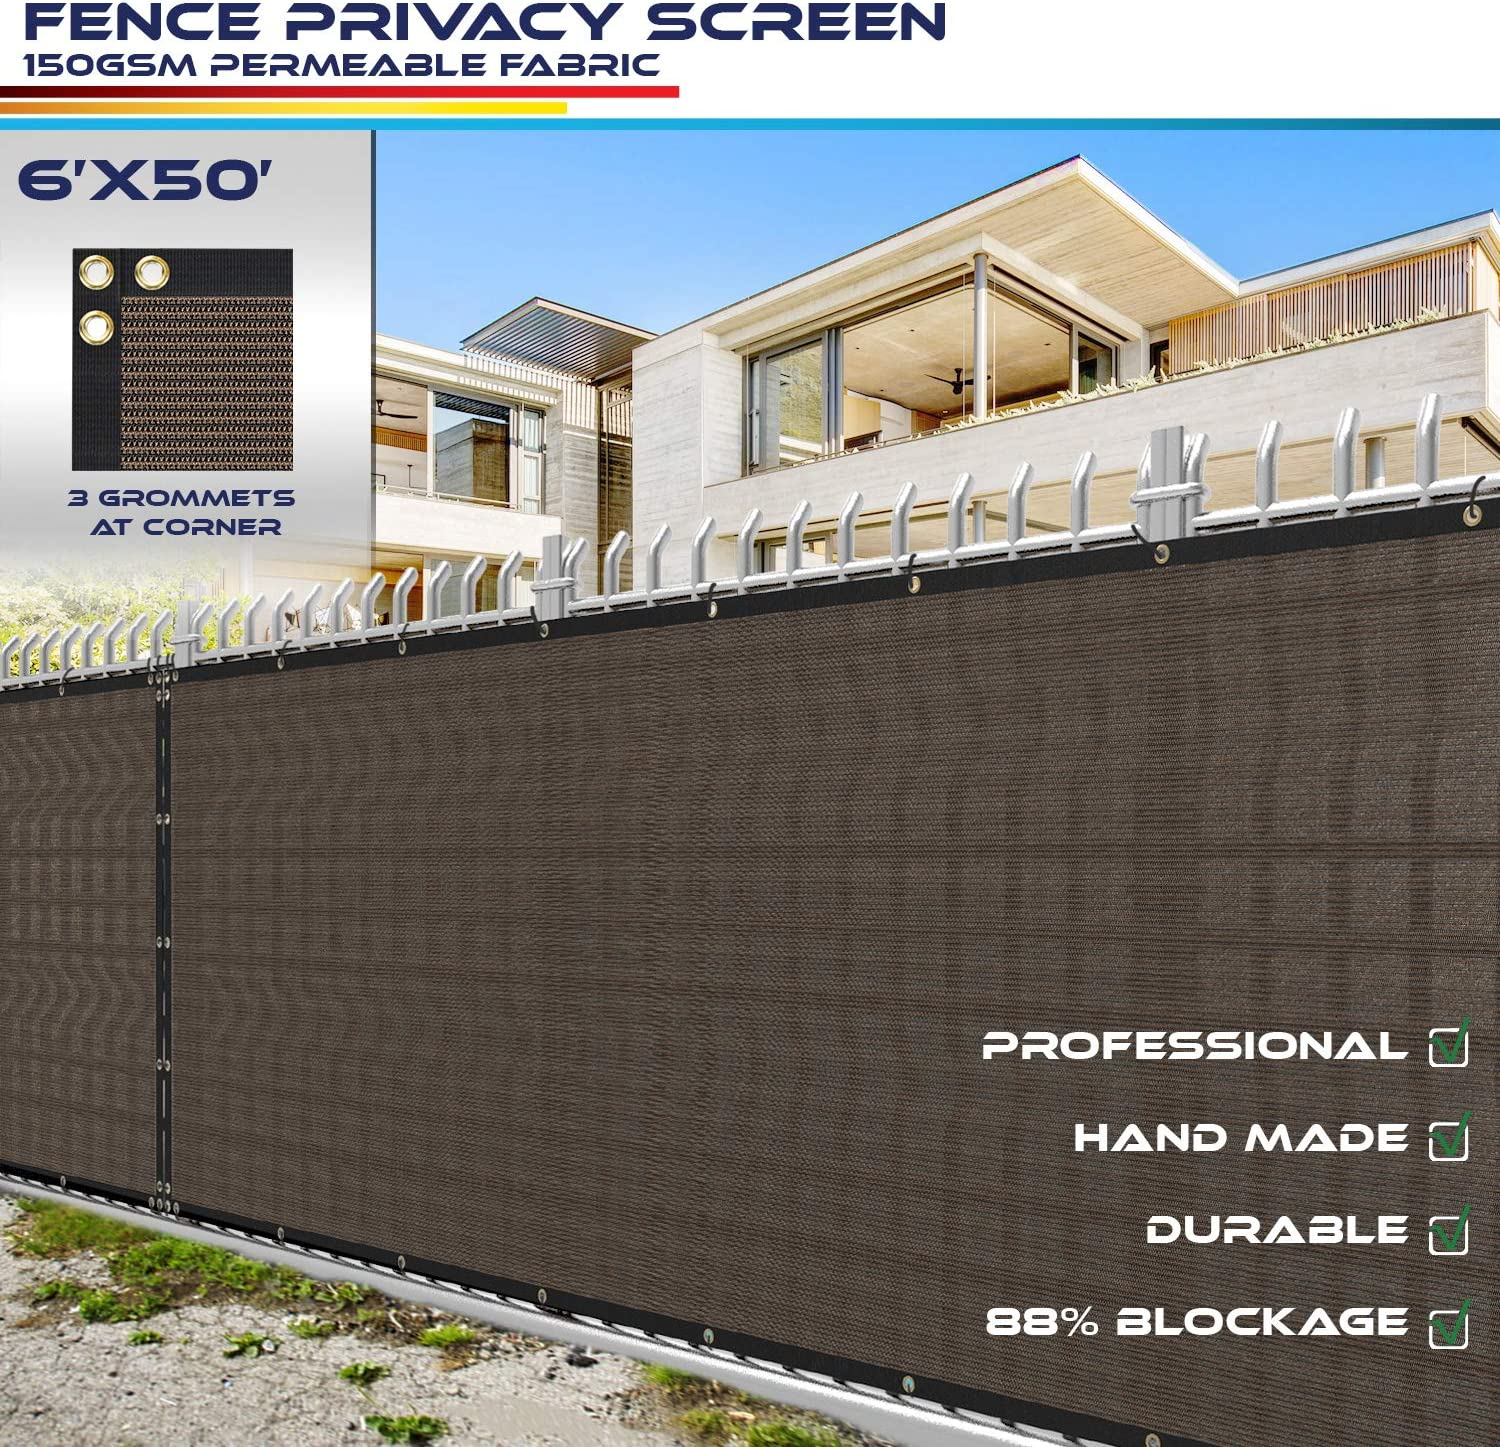 Windscreen4less Heavy Duty Fence